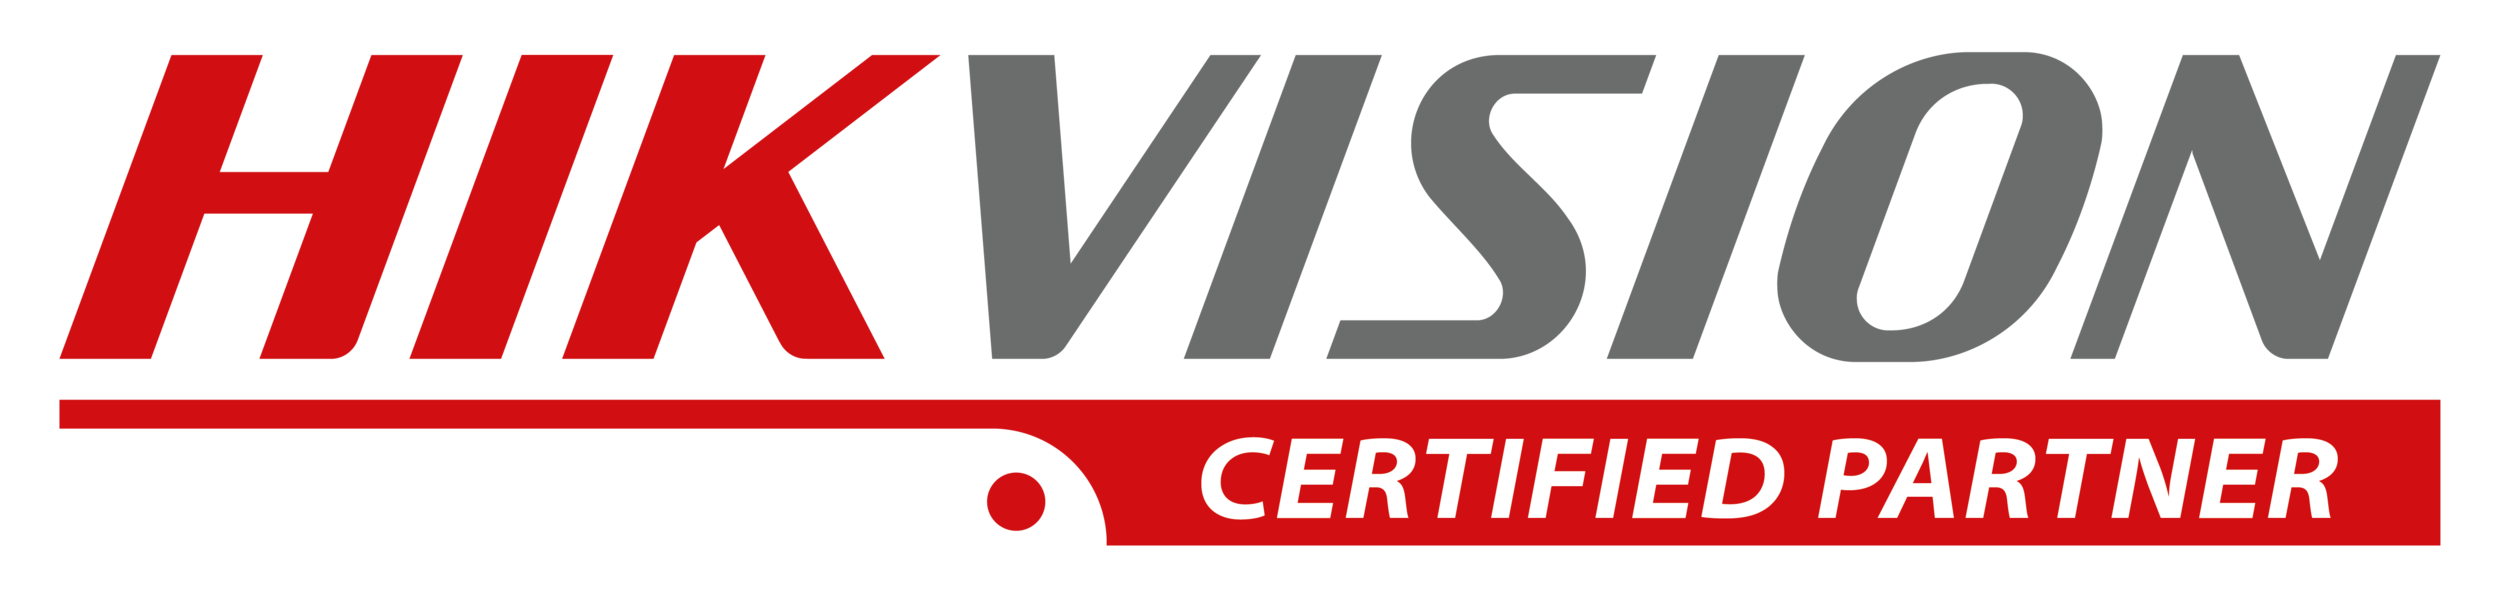 Certified-partner-logo.png